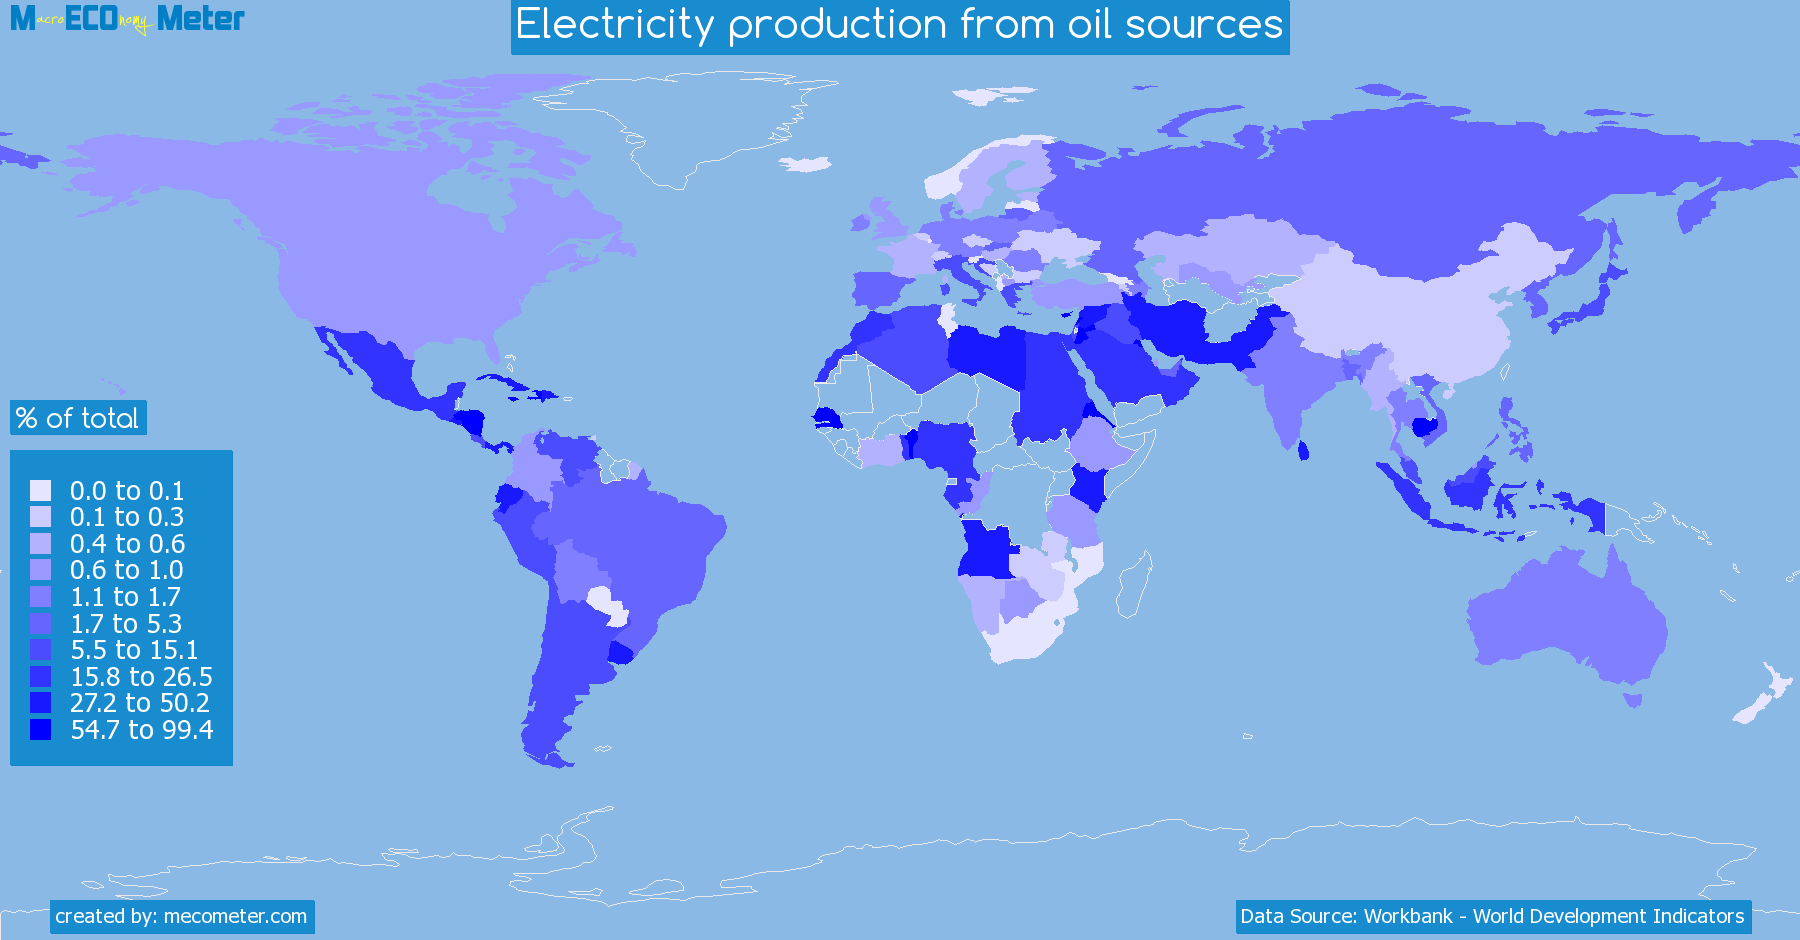 Worldmap of all countries colored to reflect the values of Electricity production from oil sources